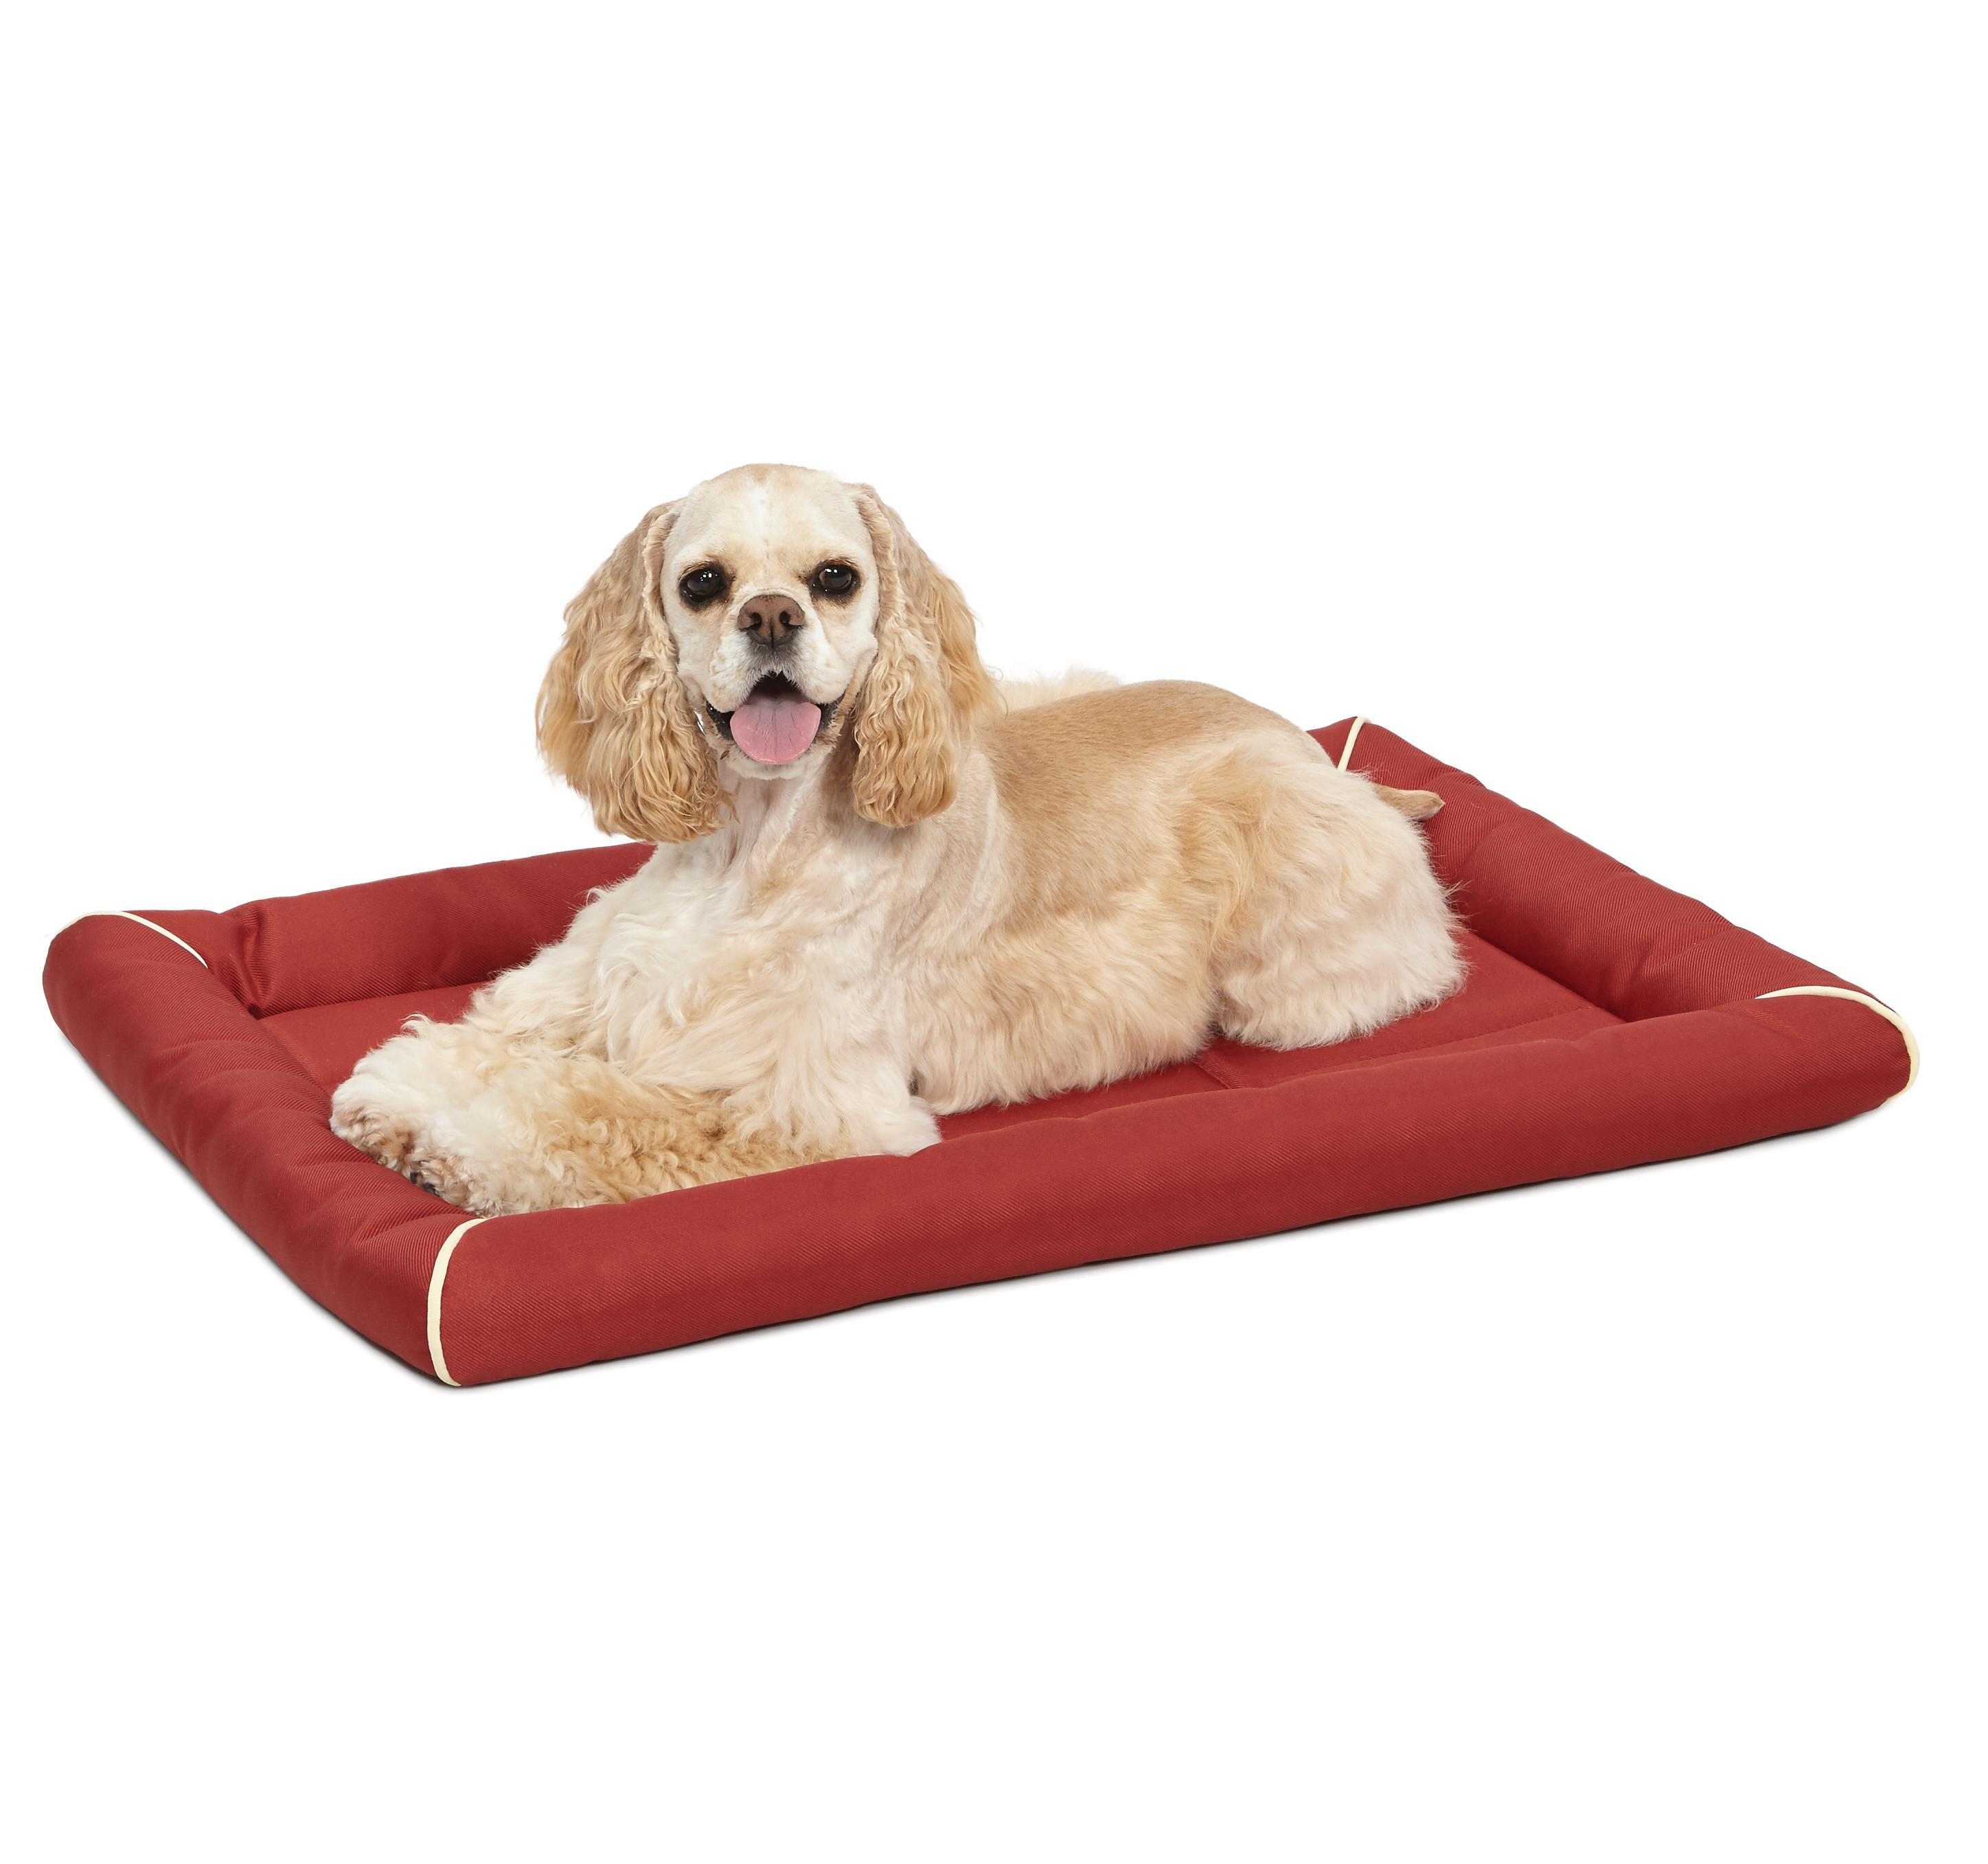 Amazoncom maxx ultra rugged dog bed pet beds pet for Rugged dog bed